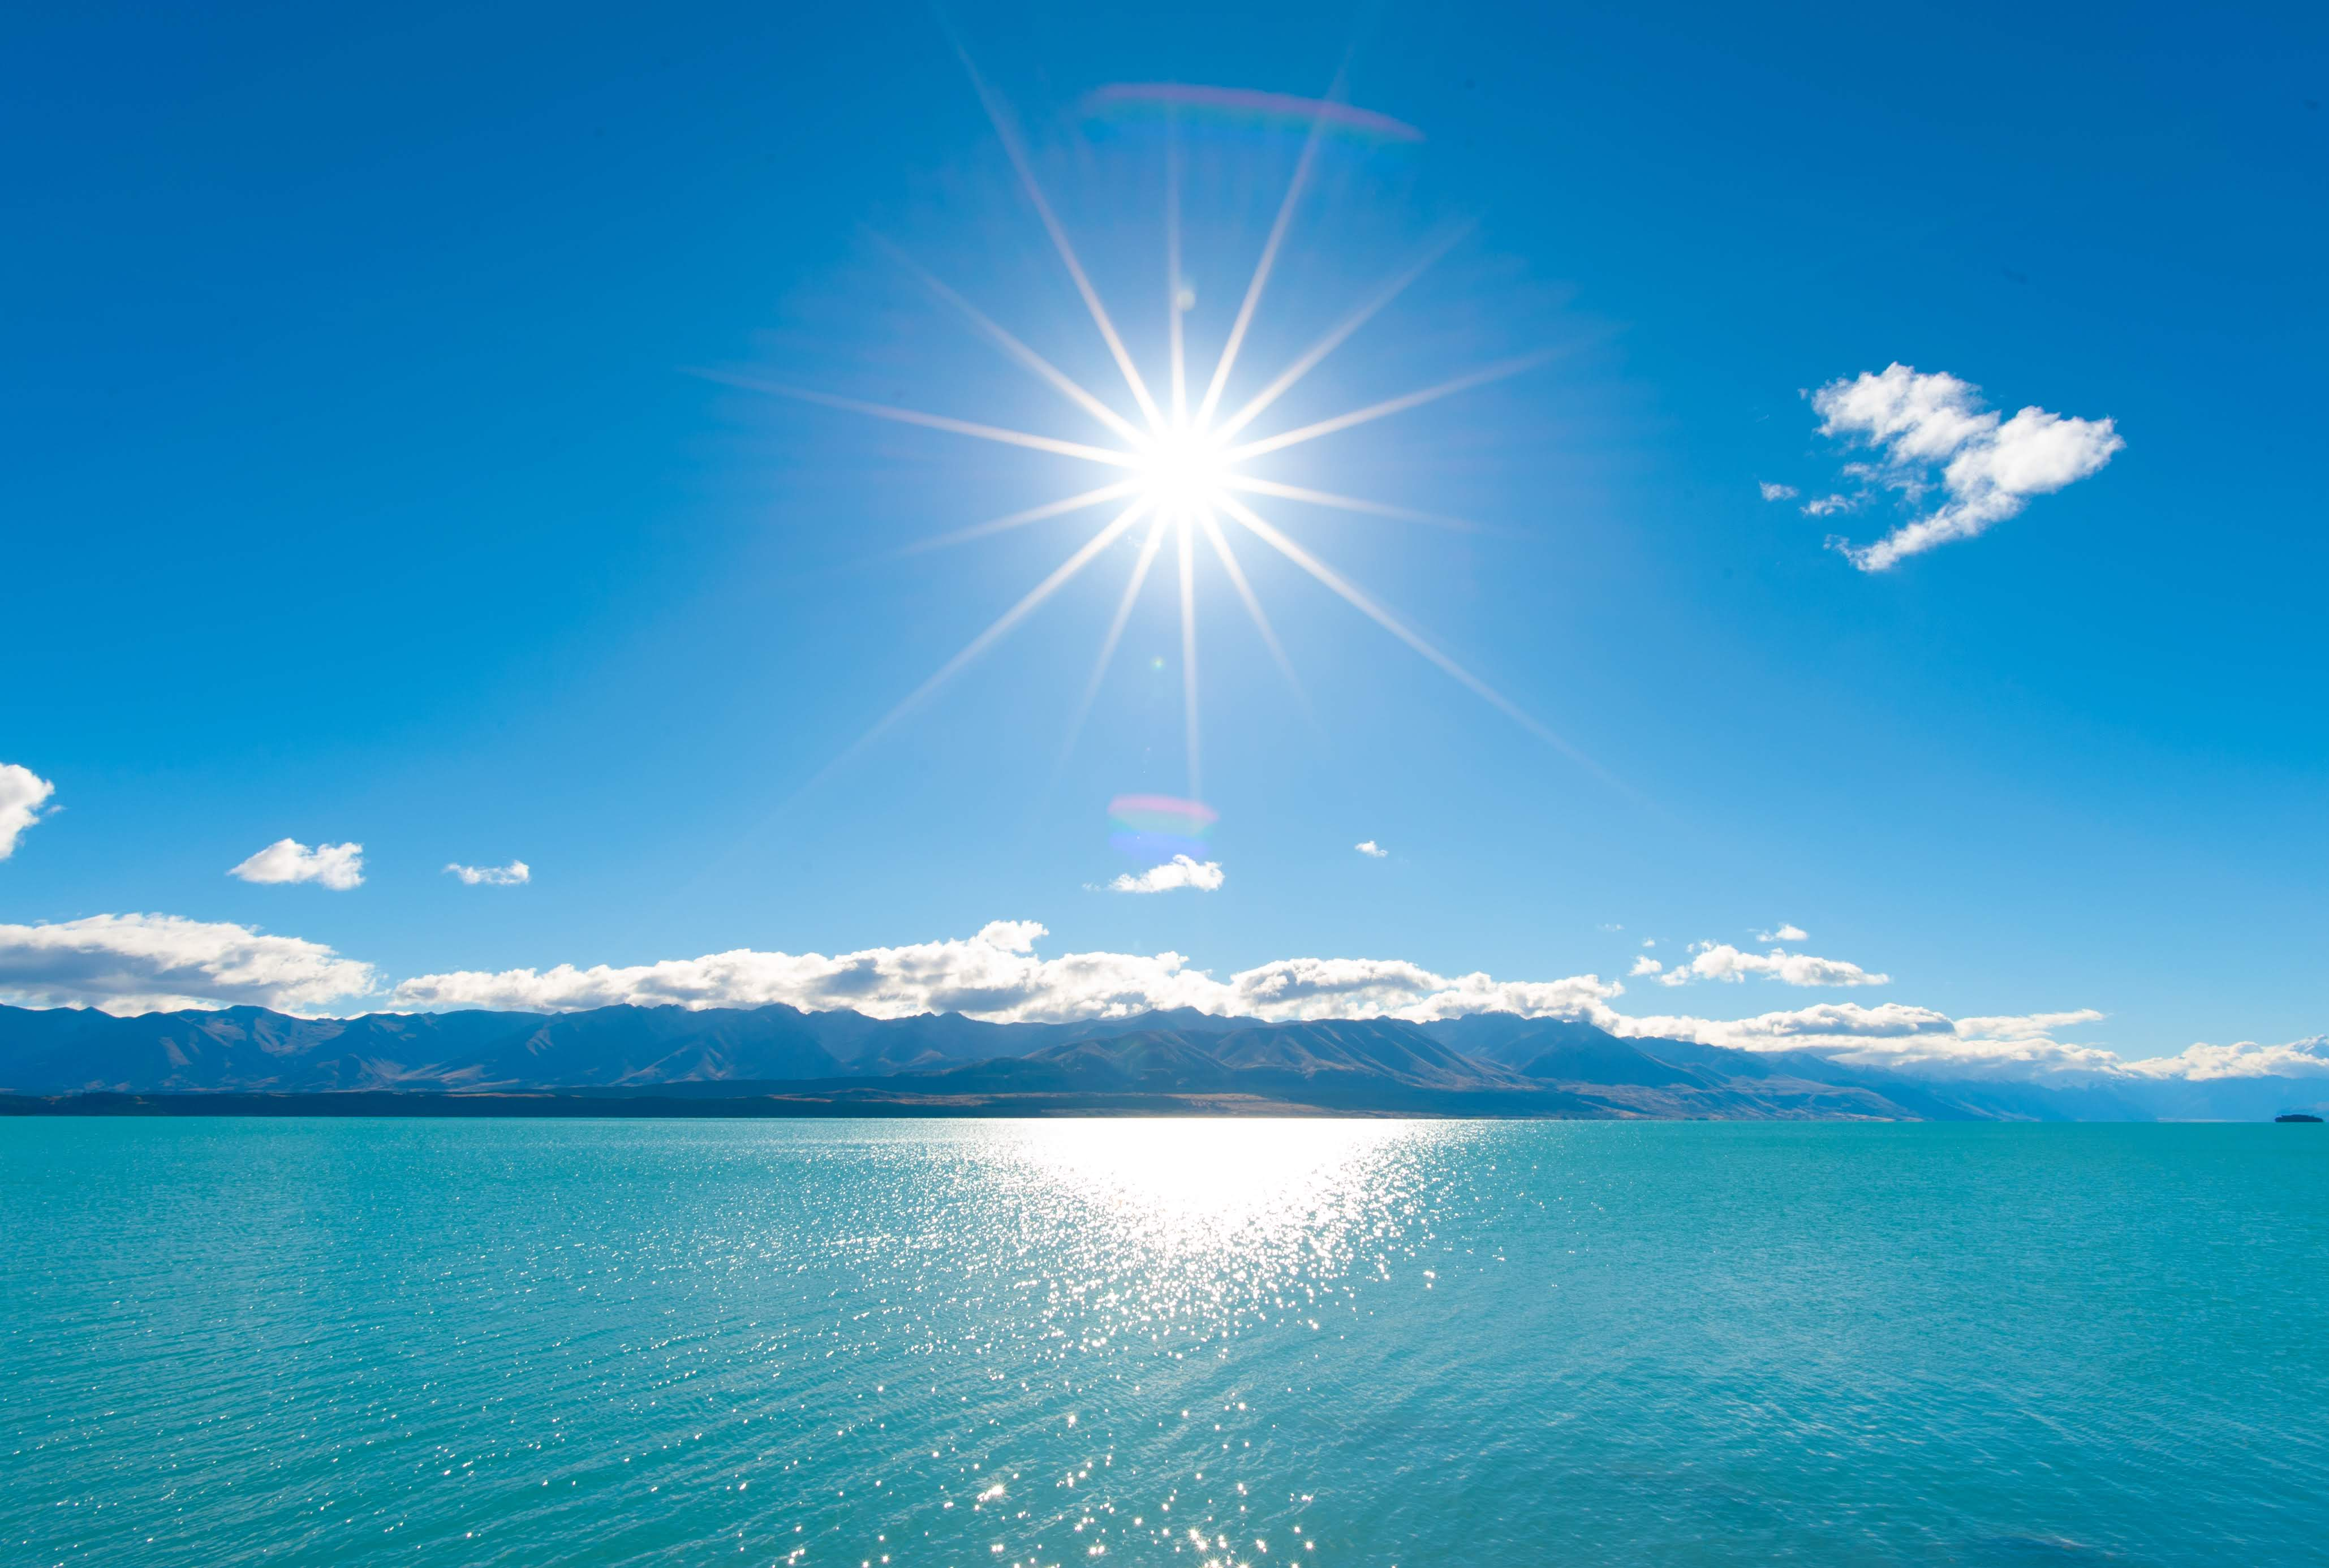 The sun reflecting on a blue lake